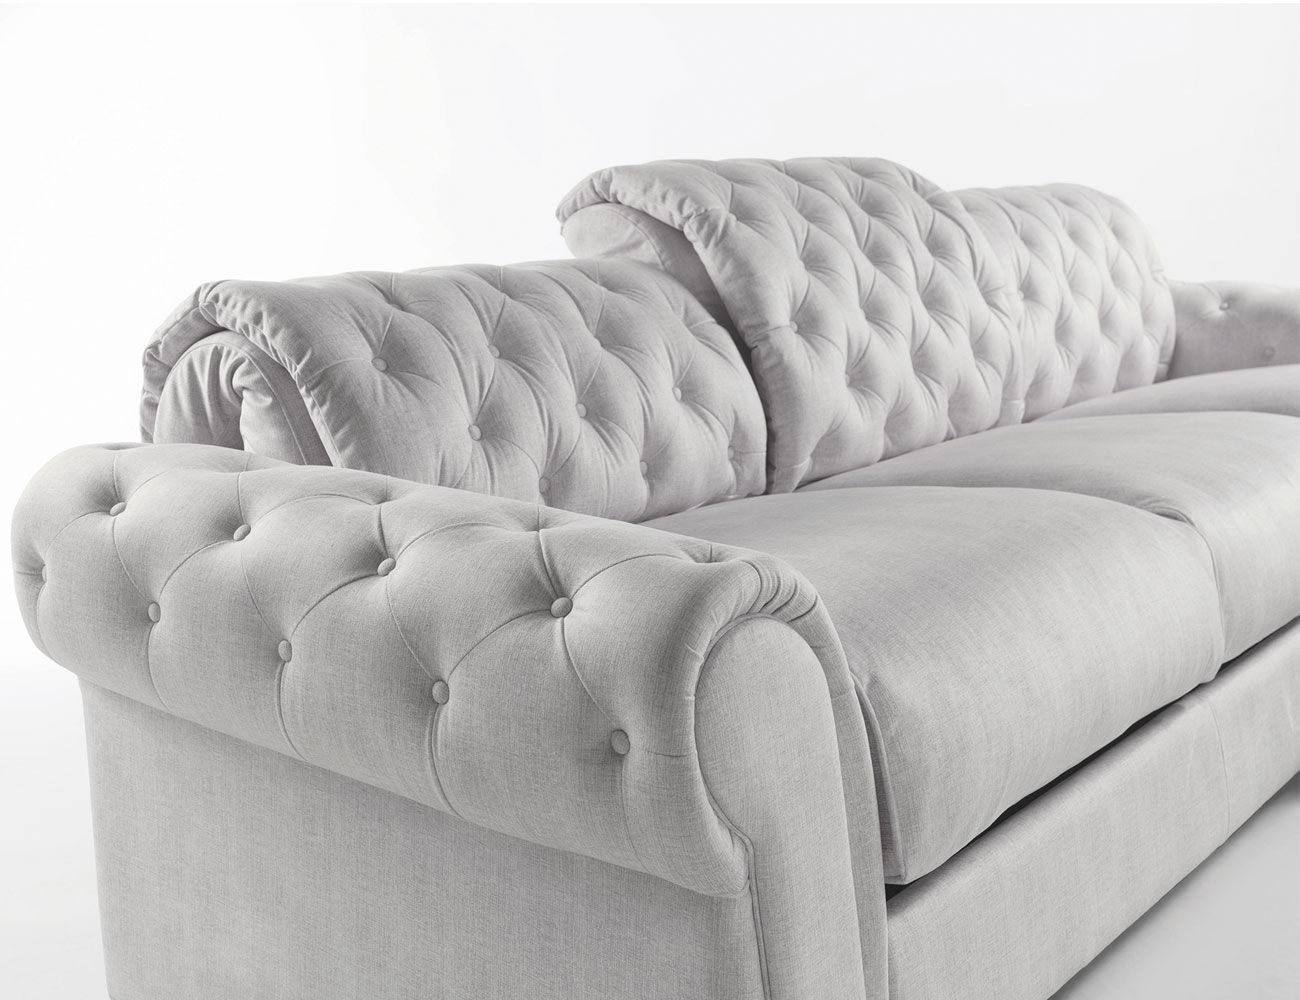 Sofa chaiselongue gran lujo decorativo capitone blanco tela 136